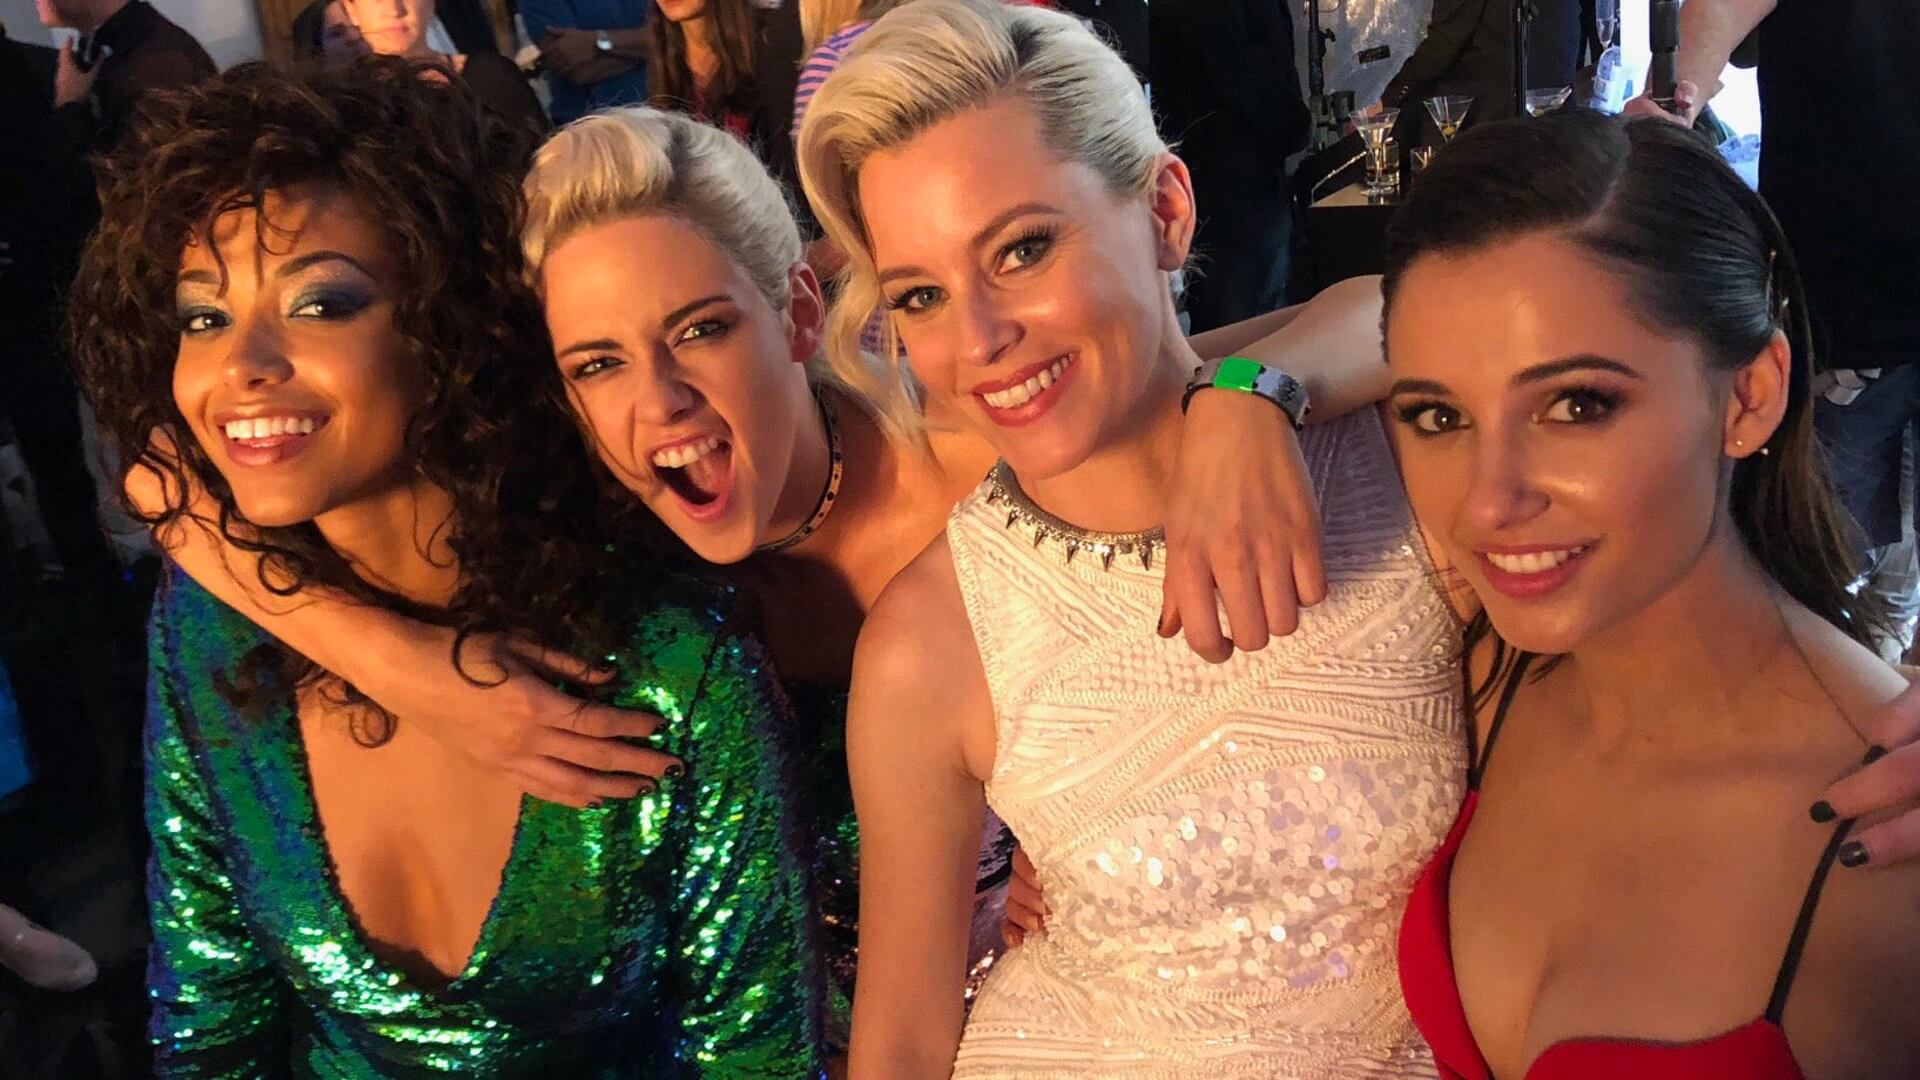 Morning, Charlie! First look at the Charlie's Angels reboot